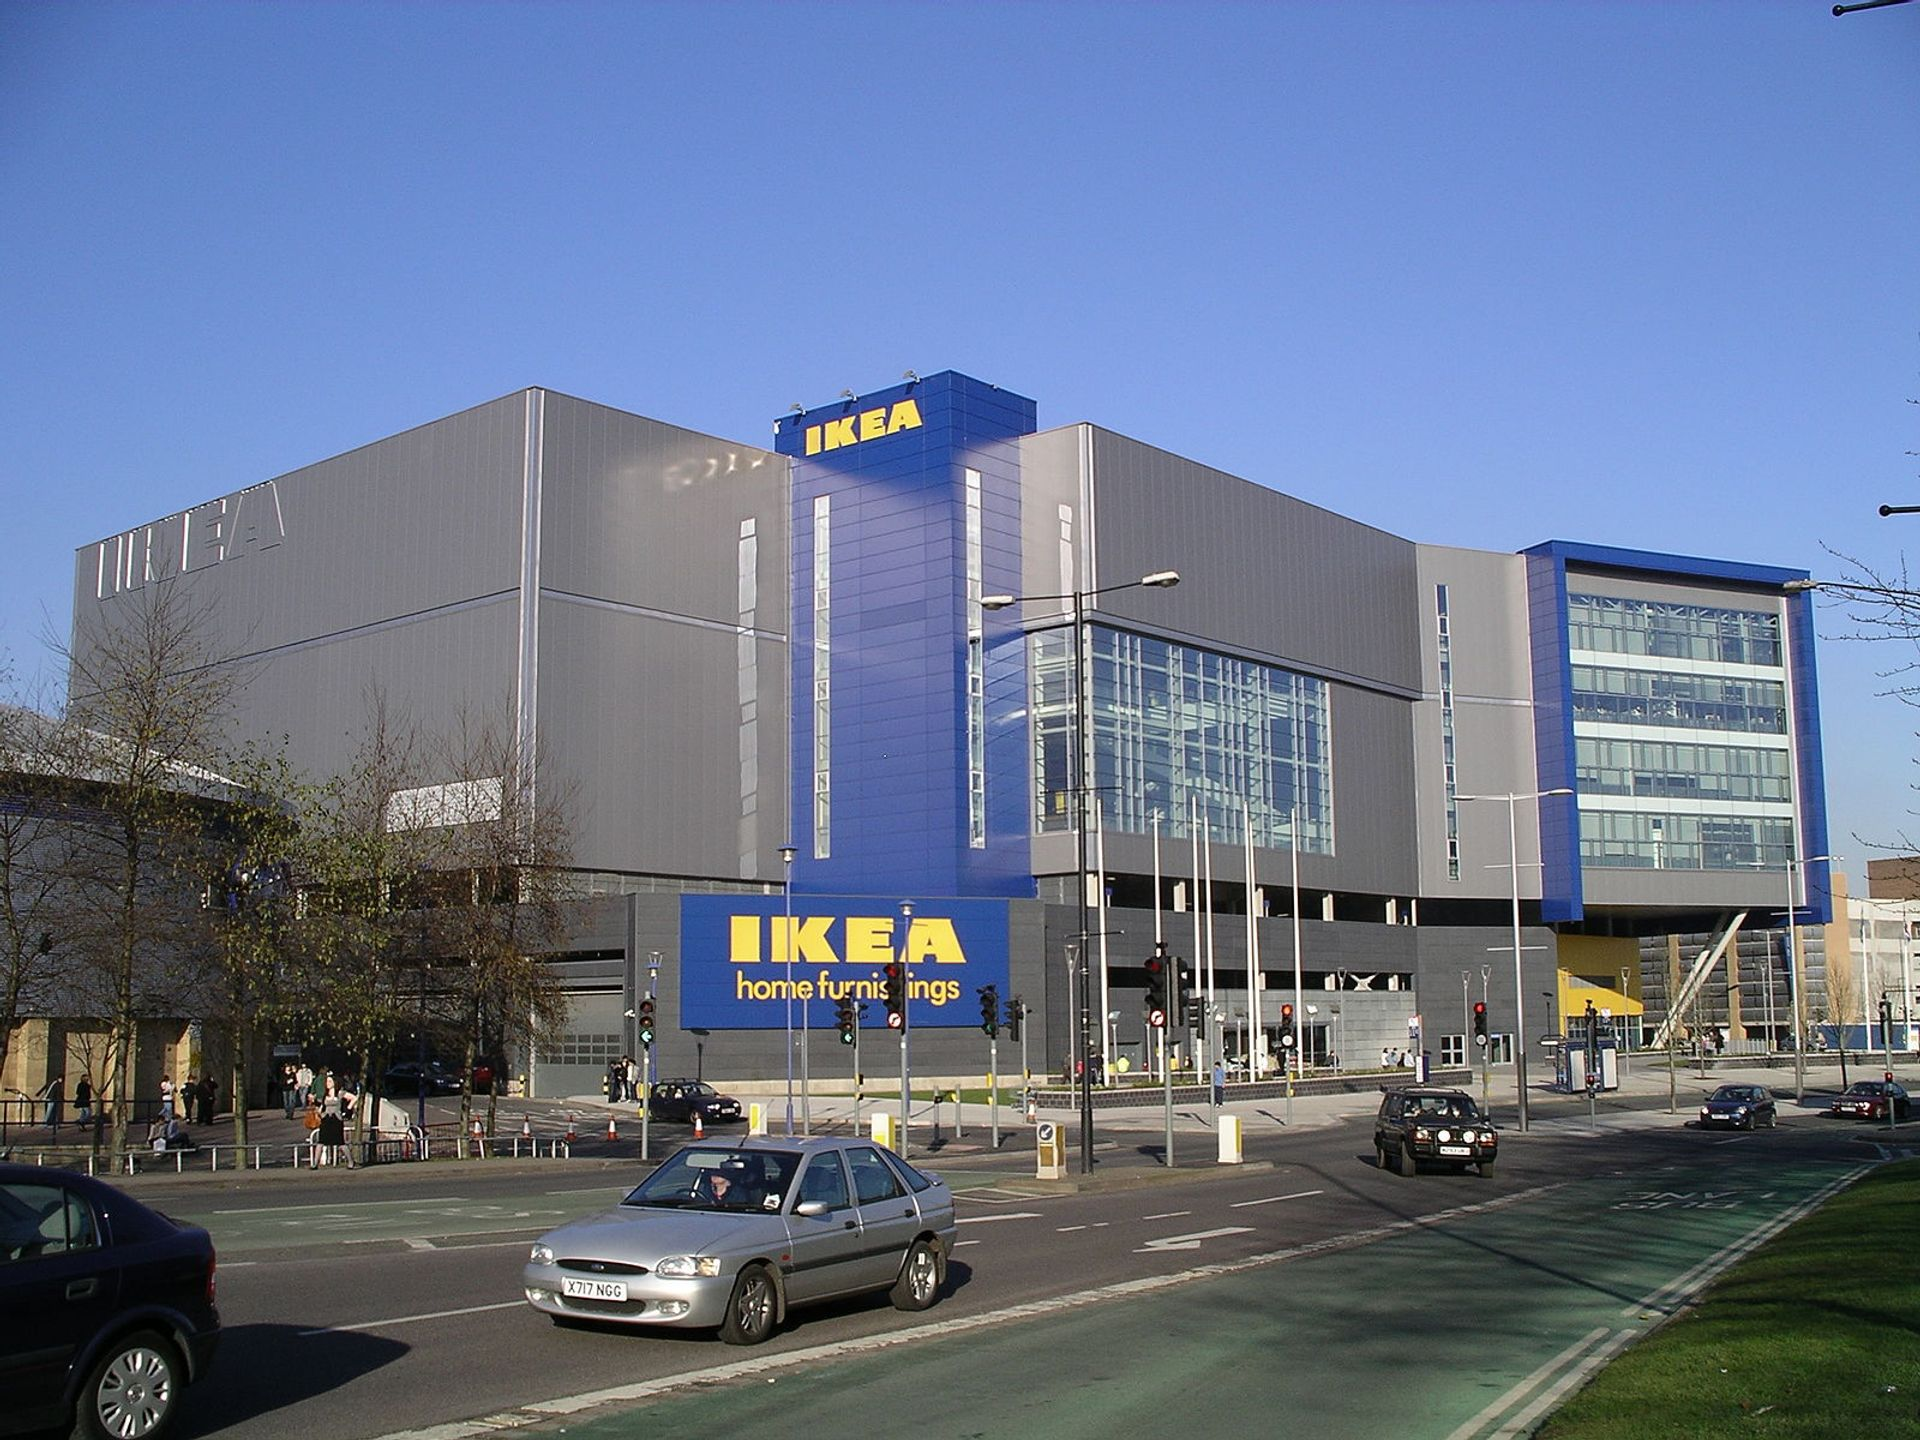 This former IKEA store in Coventry could soon house much of the UK's national art collection